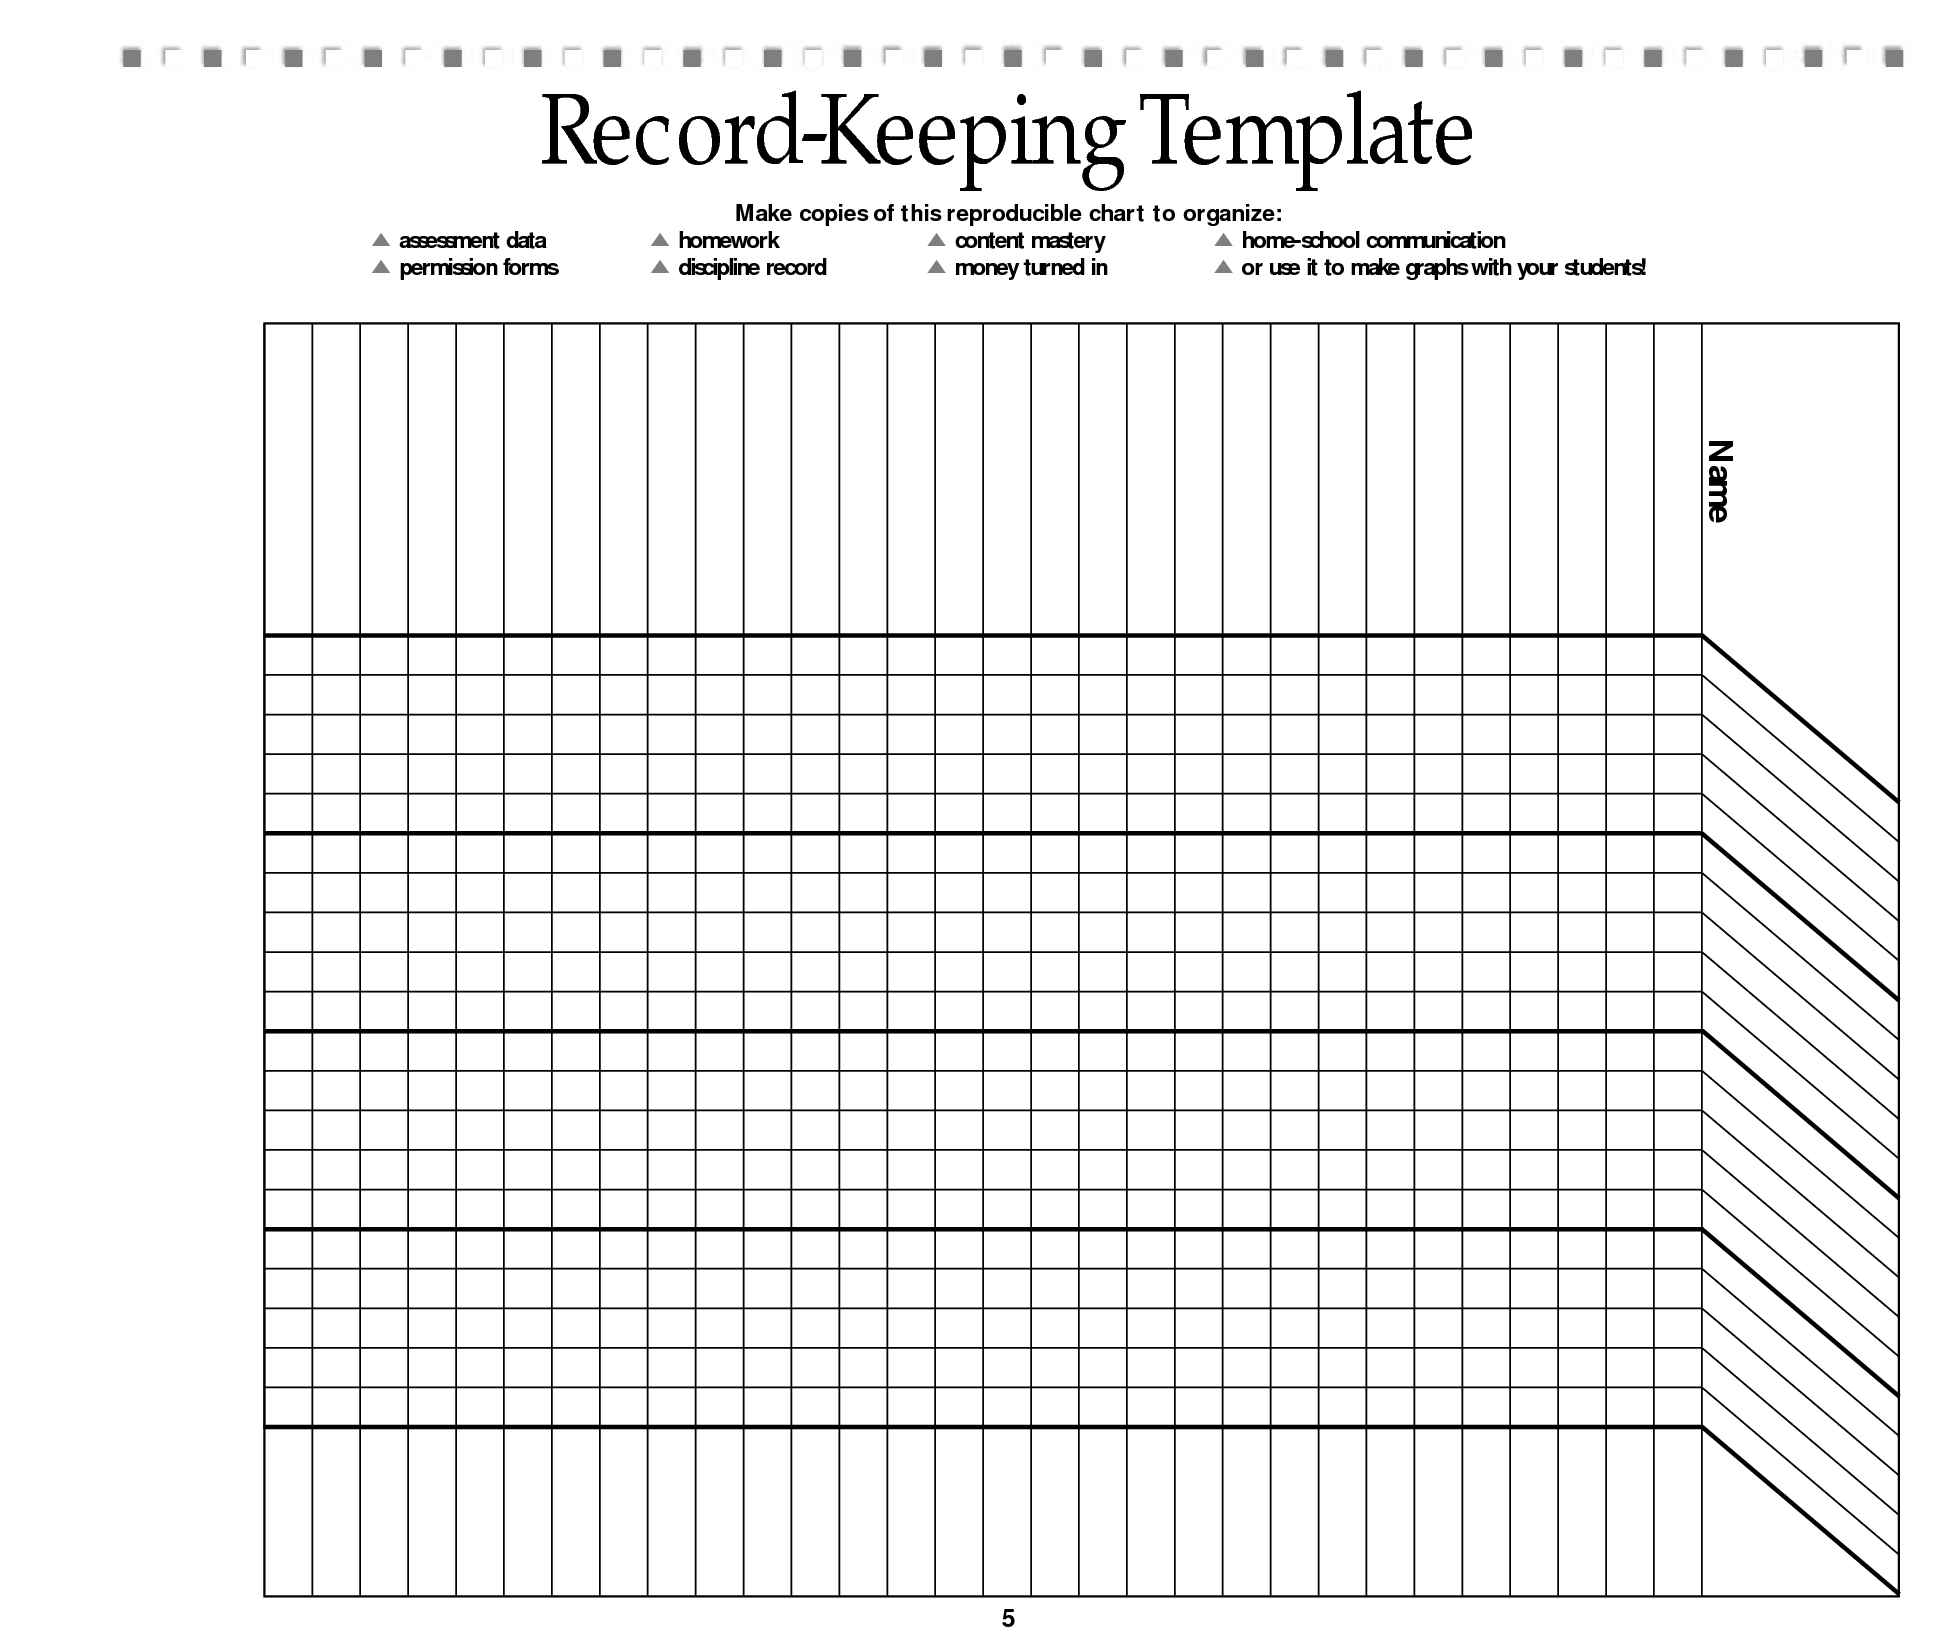 Free Printable Record Keeping Forms | Back To School | Pinterest - Free Printable Grade Sheet